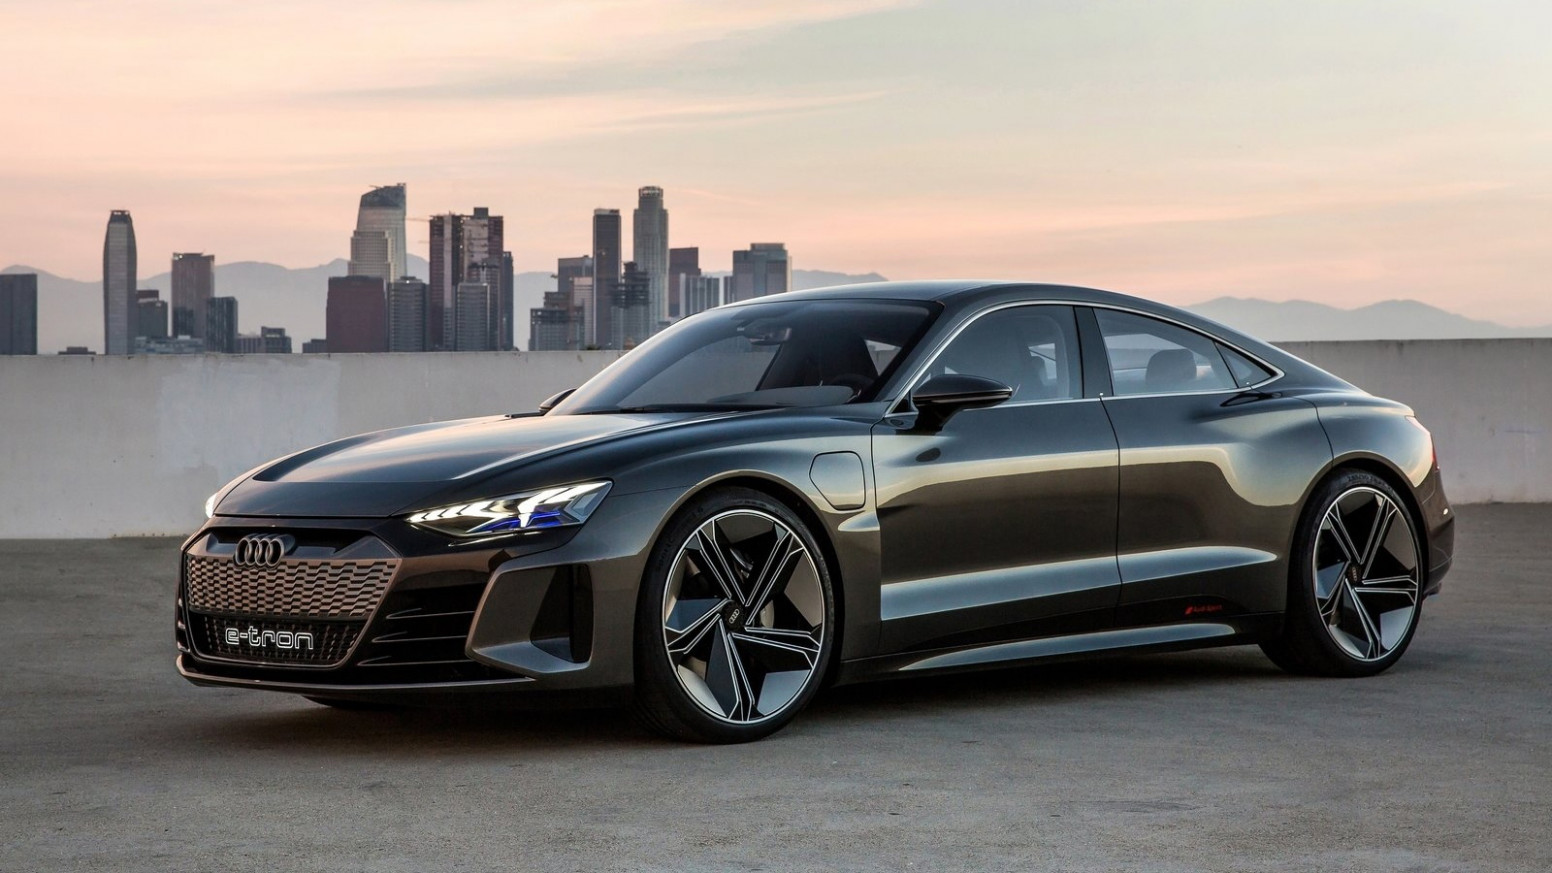 New Review 2022 Audi E Tron Gt Price